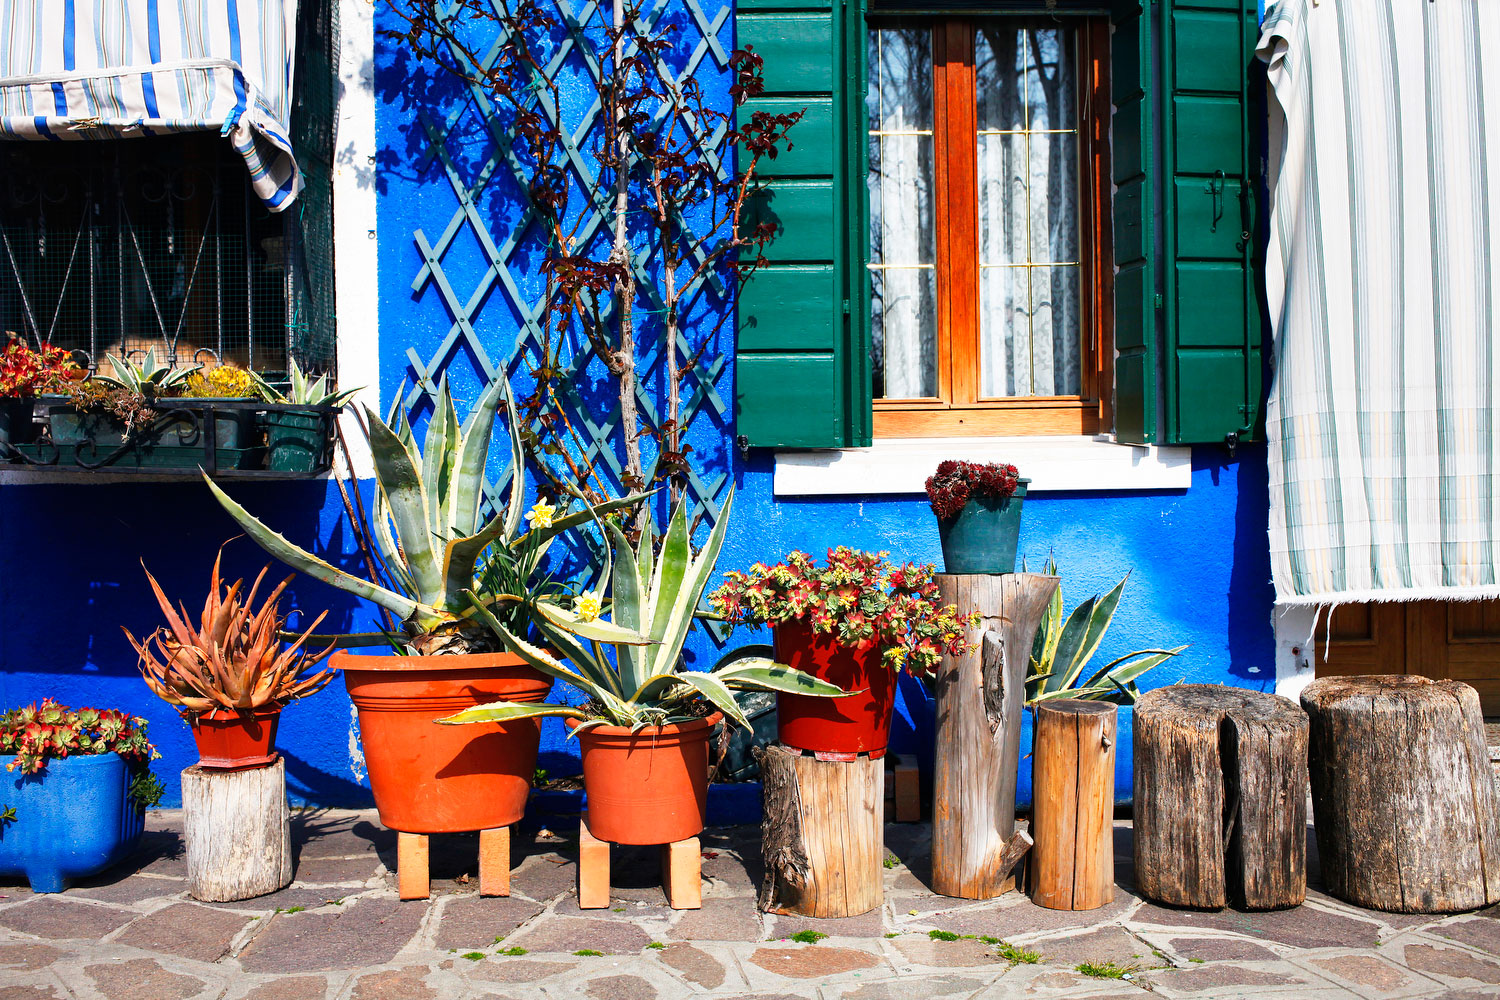 Houseplants in Burano, Italy | Freckle & Fair